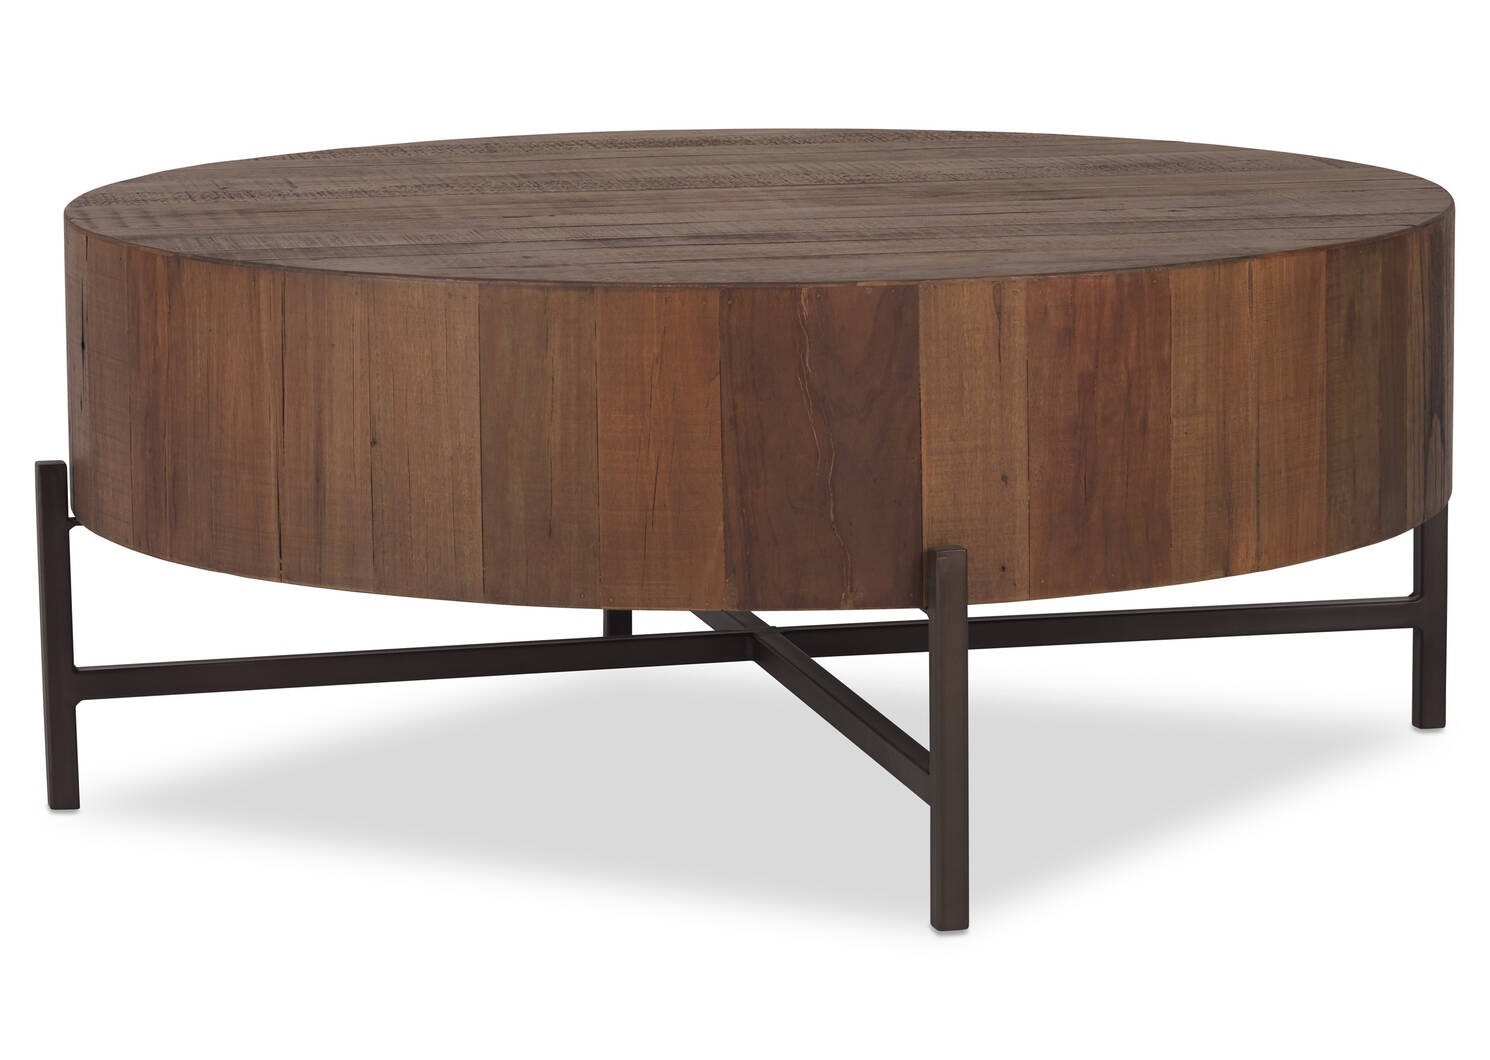 Table basse Atwell -Lowry muscade